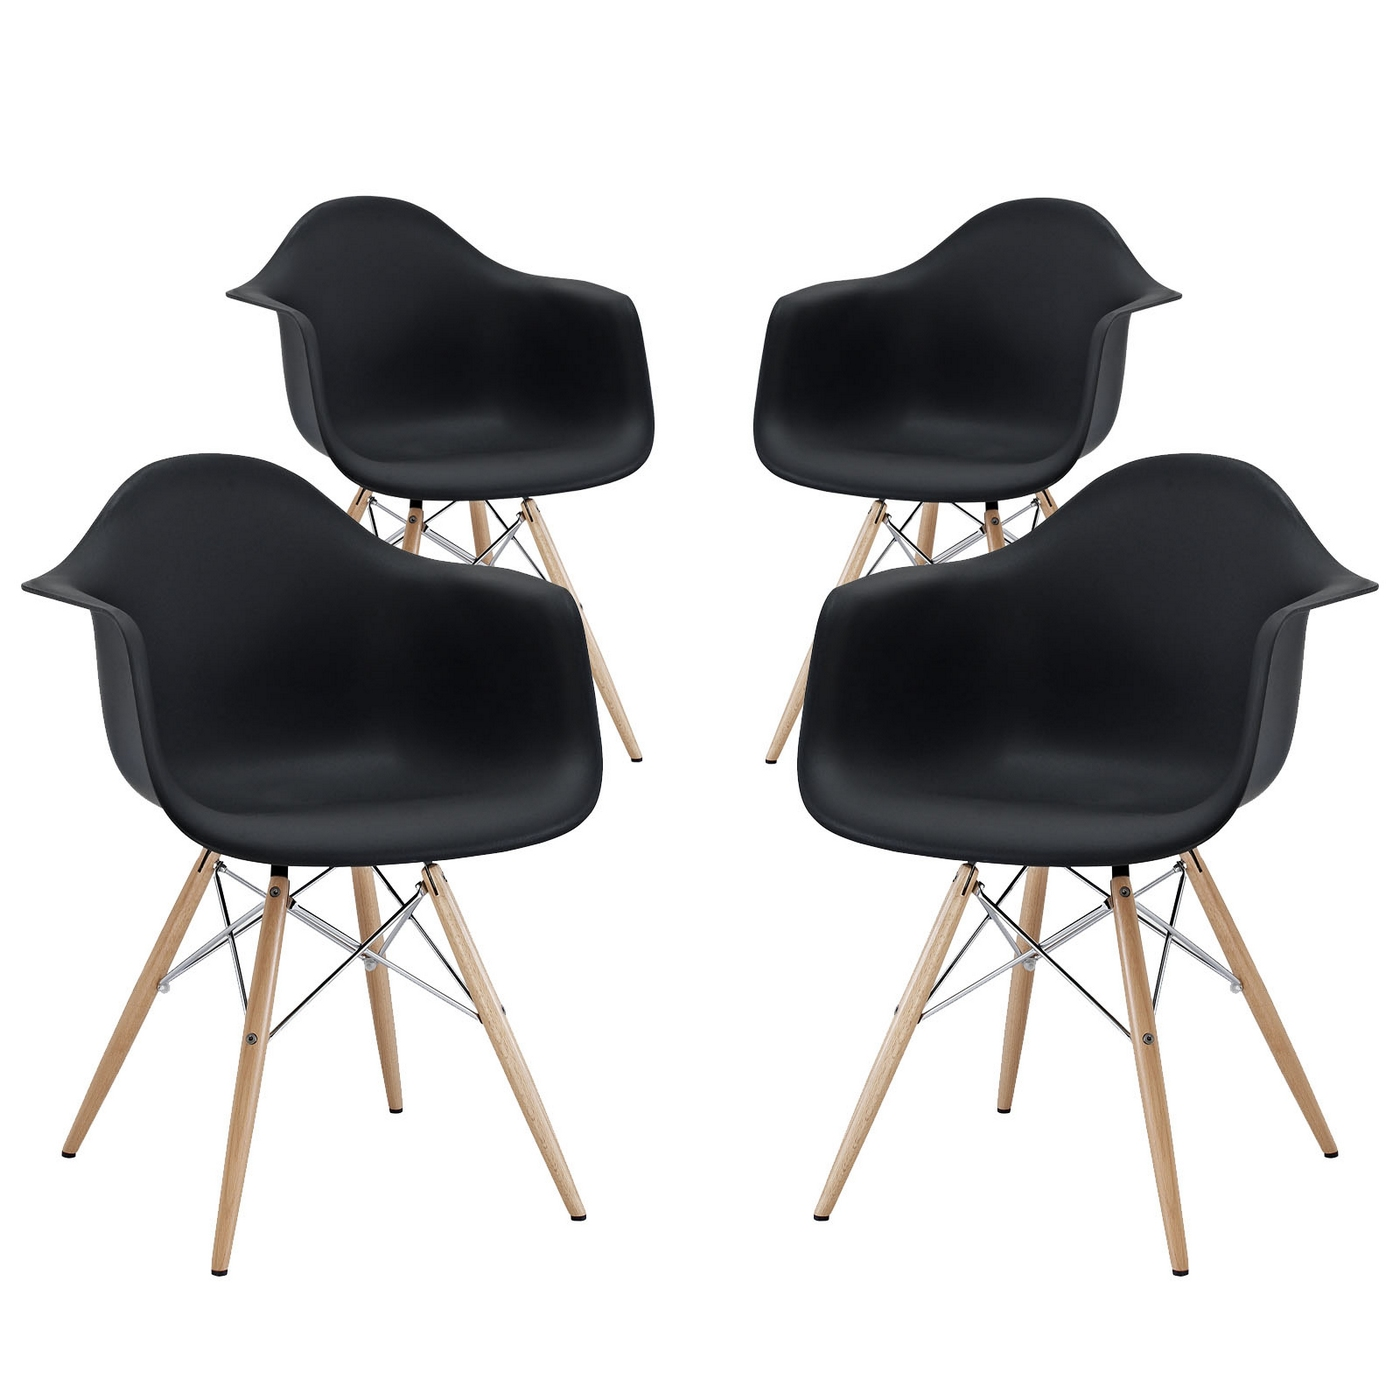 Pyramid Modern Molded Plastic Dining Armchair With Wood